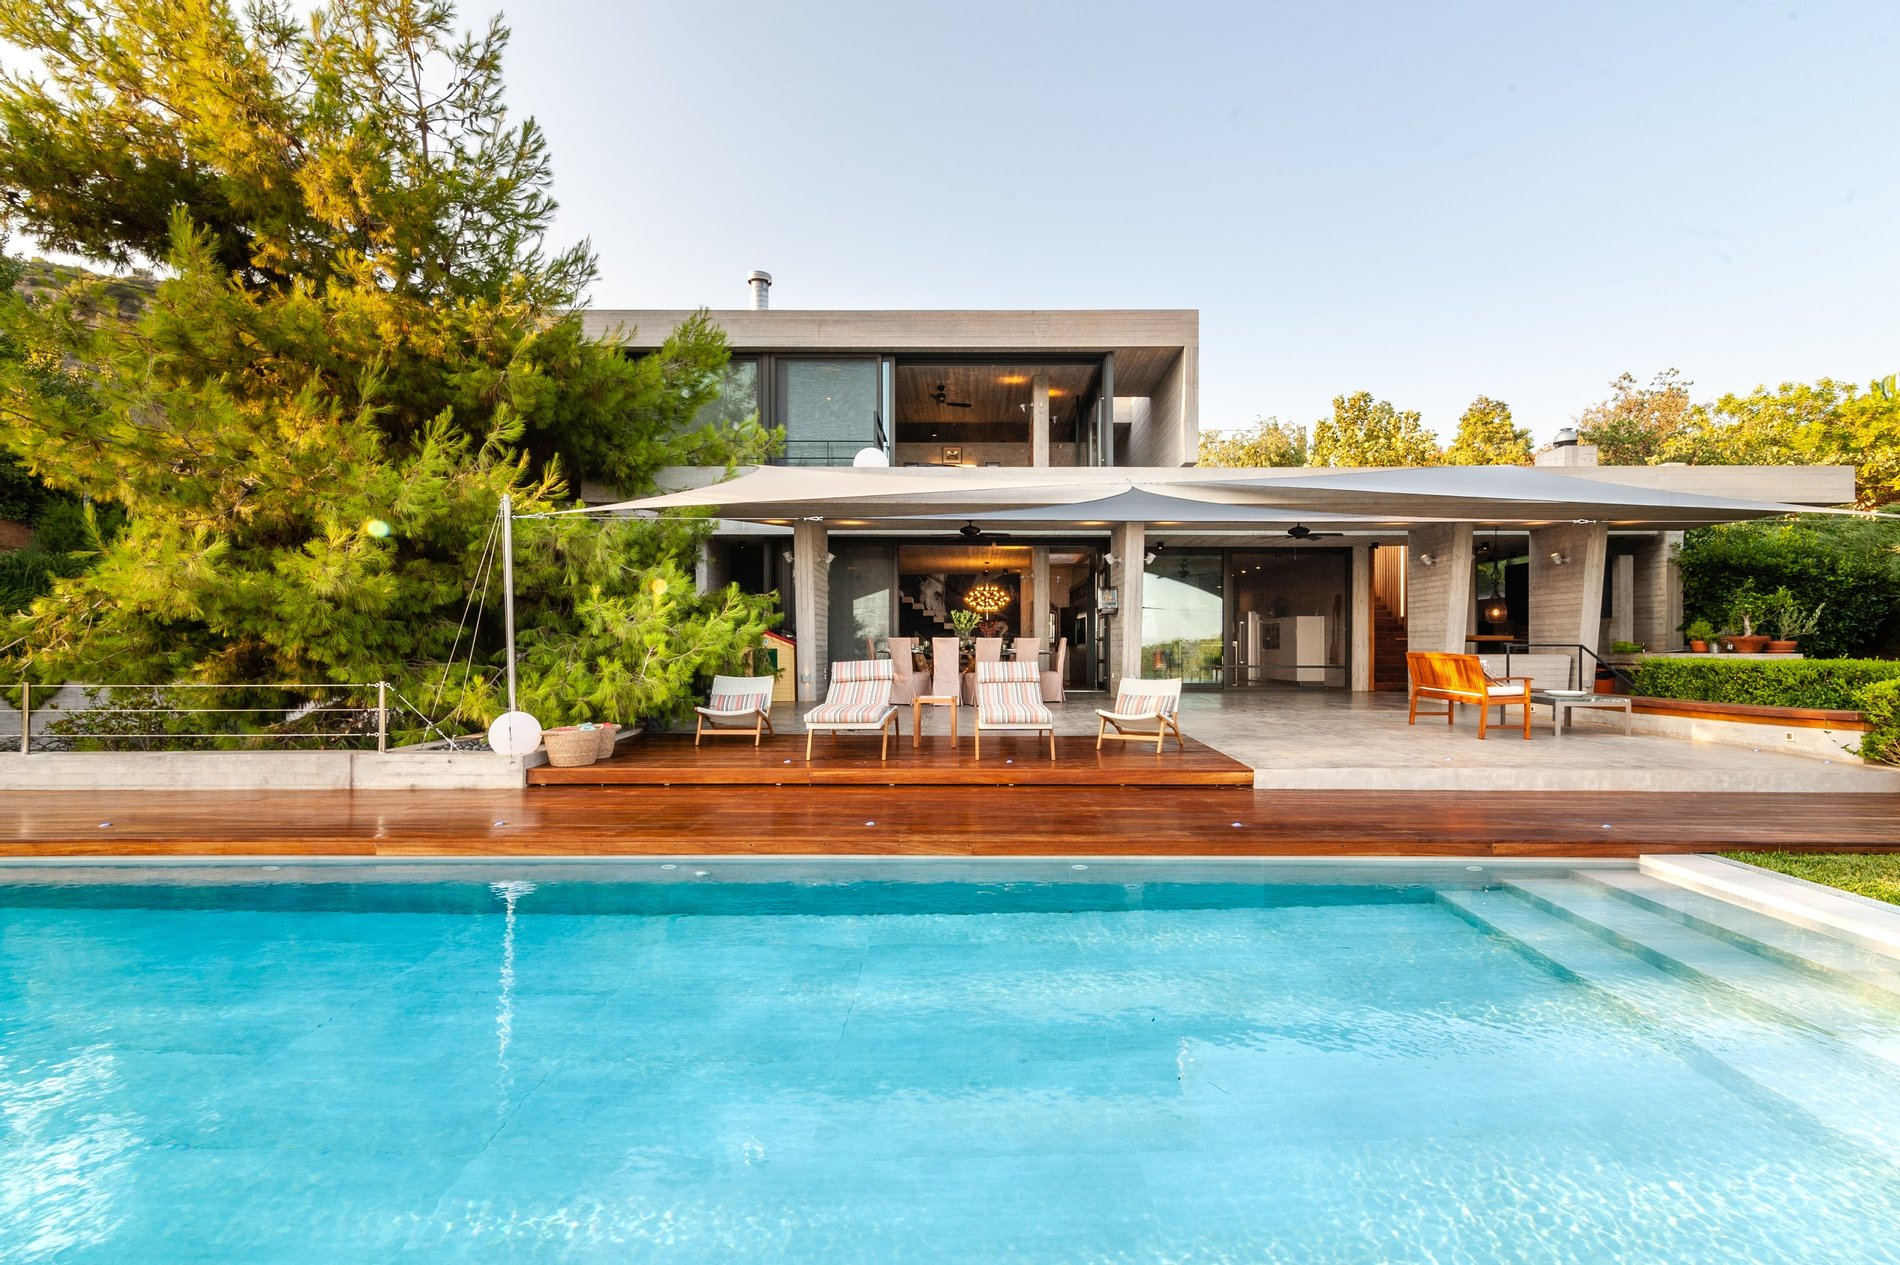 Poolside view of a Modern home with black windows and gray wood siding.